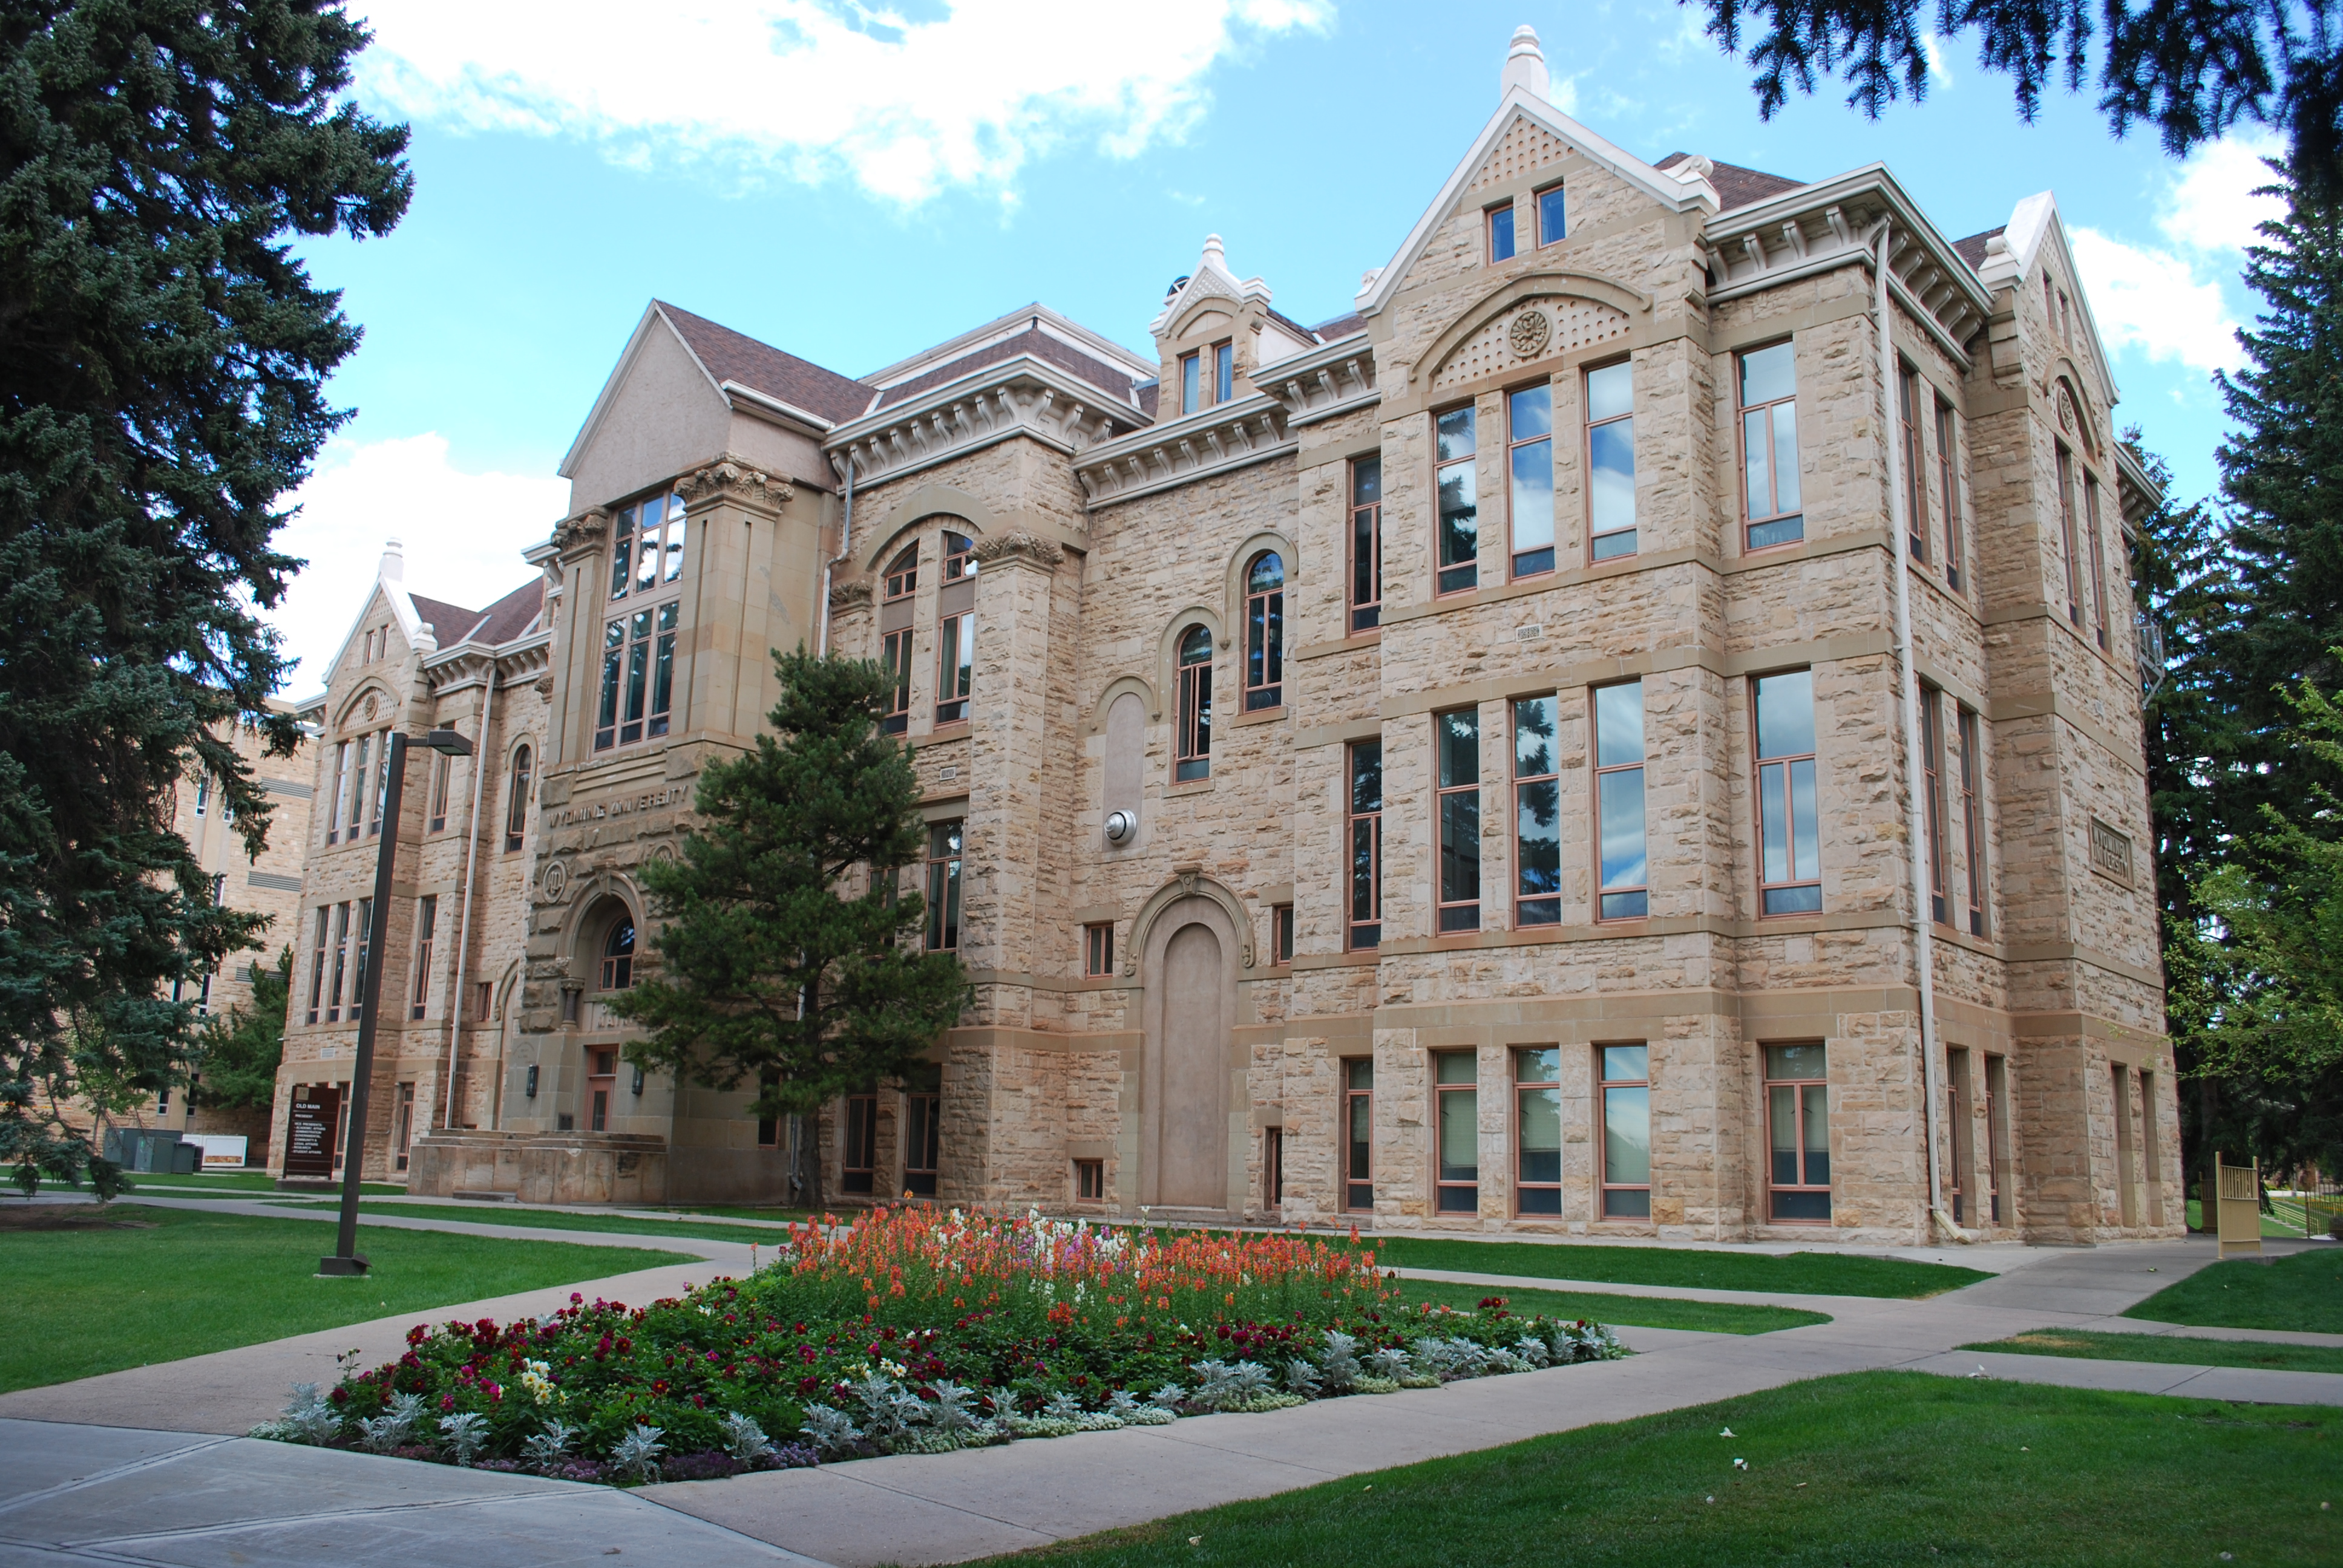 Old Main at the University of Wyoming. (Thecoldmidwest via Wikipedia Commons)